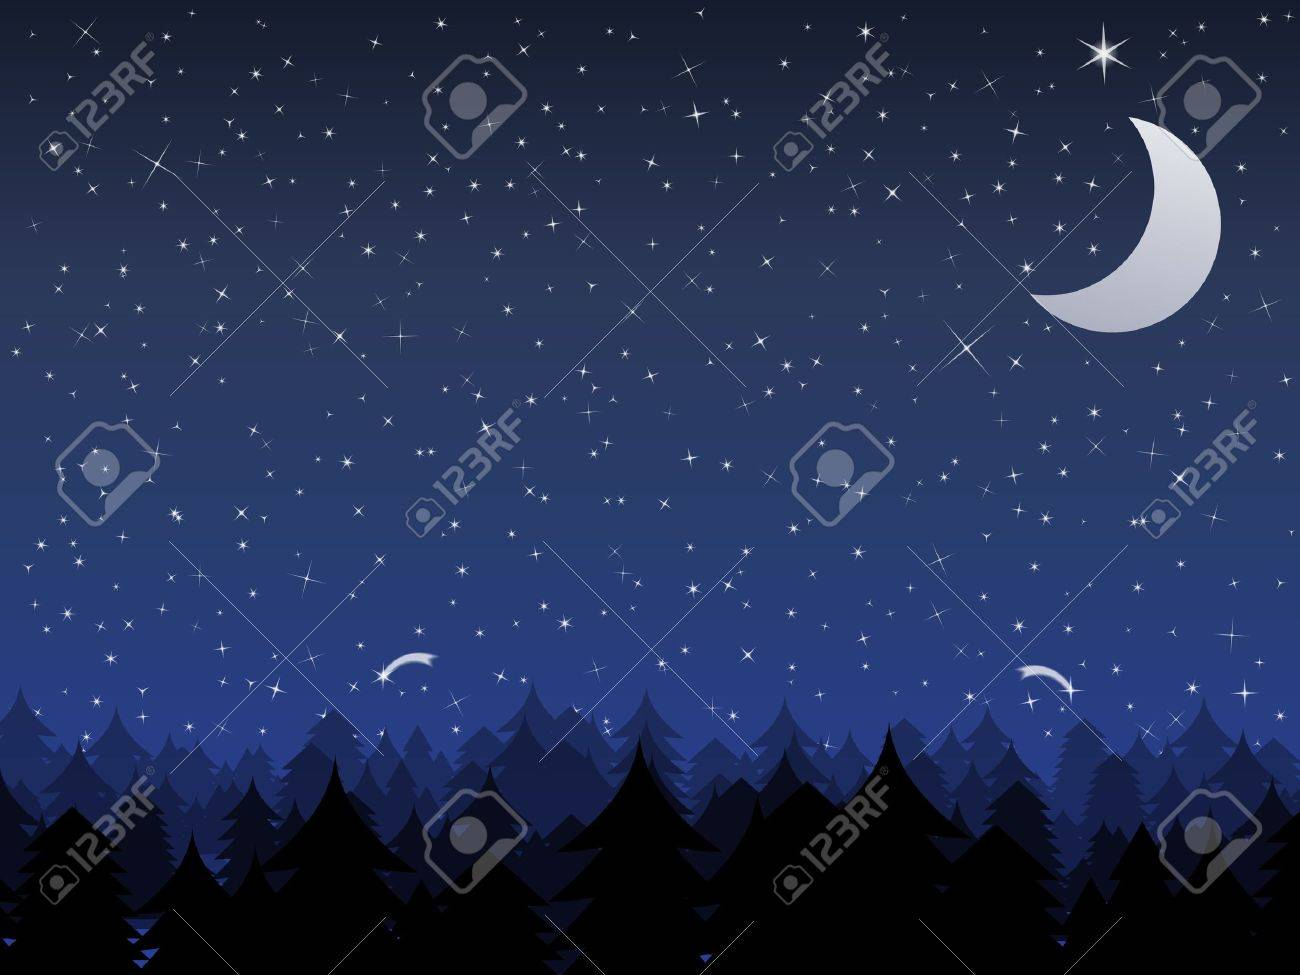 Silhouette of a forest and night sky with stars and moon, vector illustration Stock Vector - 11030290